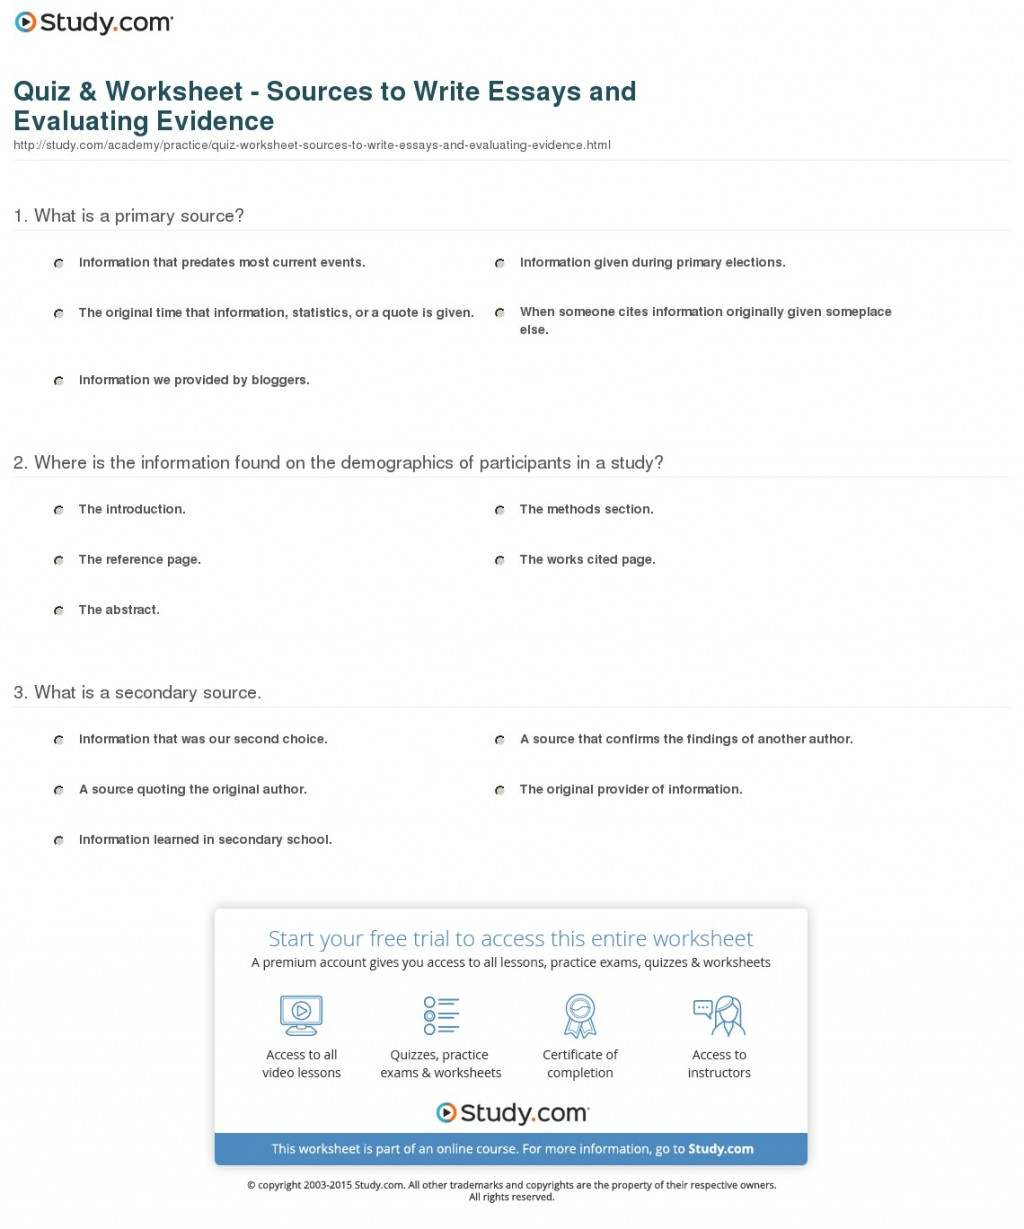 011 Quiz Worksheet Sources To Write Essays And Evaluating Evidence Essay Example In Fascinating Spanish Tips For Writing Written Phrases Large